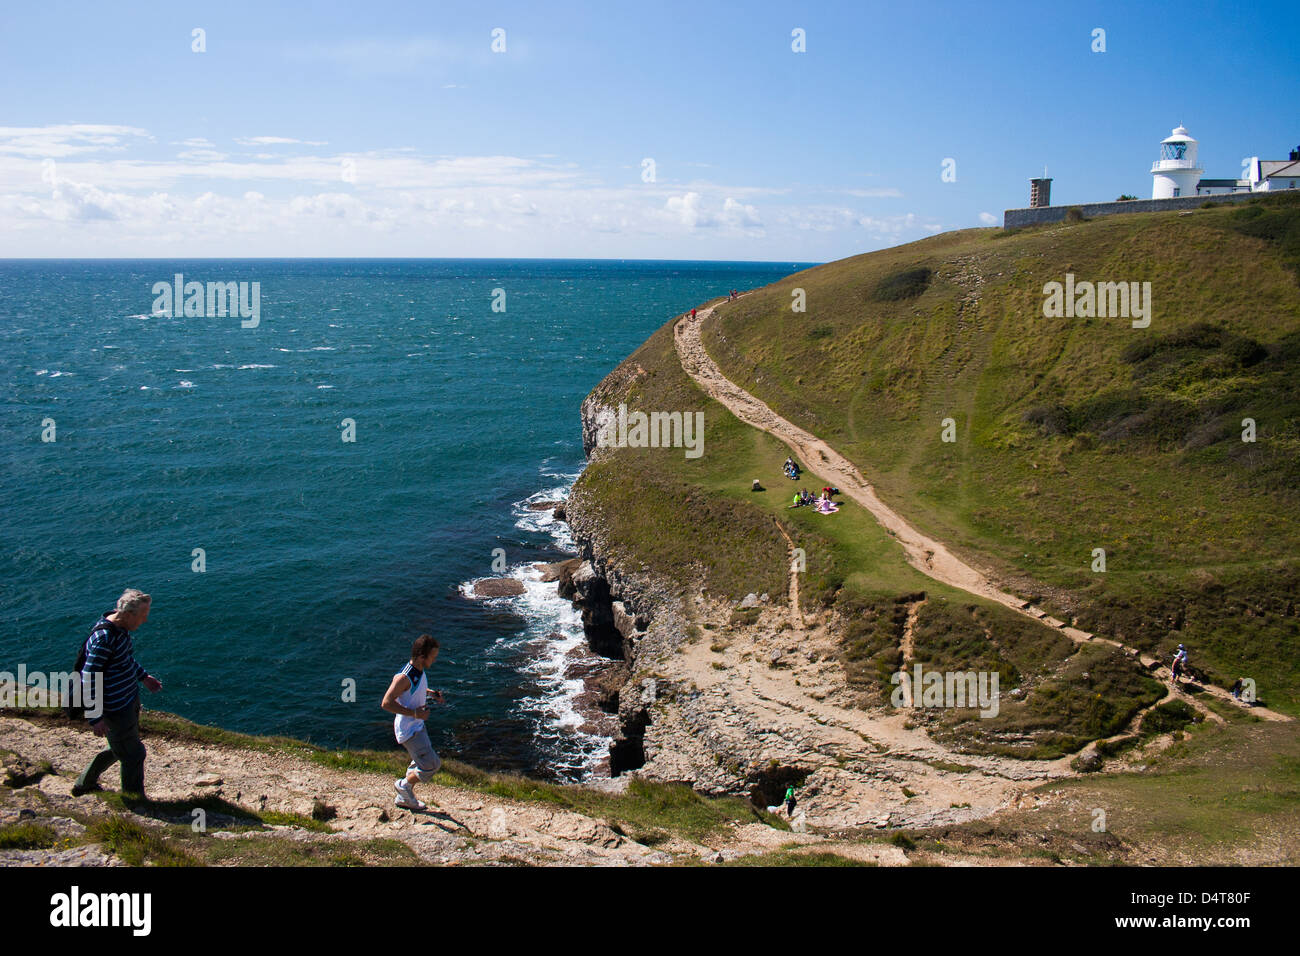 Pathway leading to Anvil Point Lighthouse along the Dorset coastline in the South of England. Walkers and joggers - Stock Image